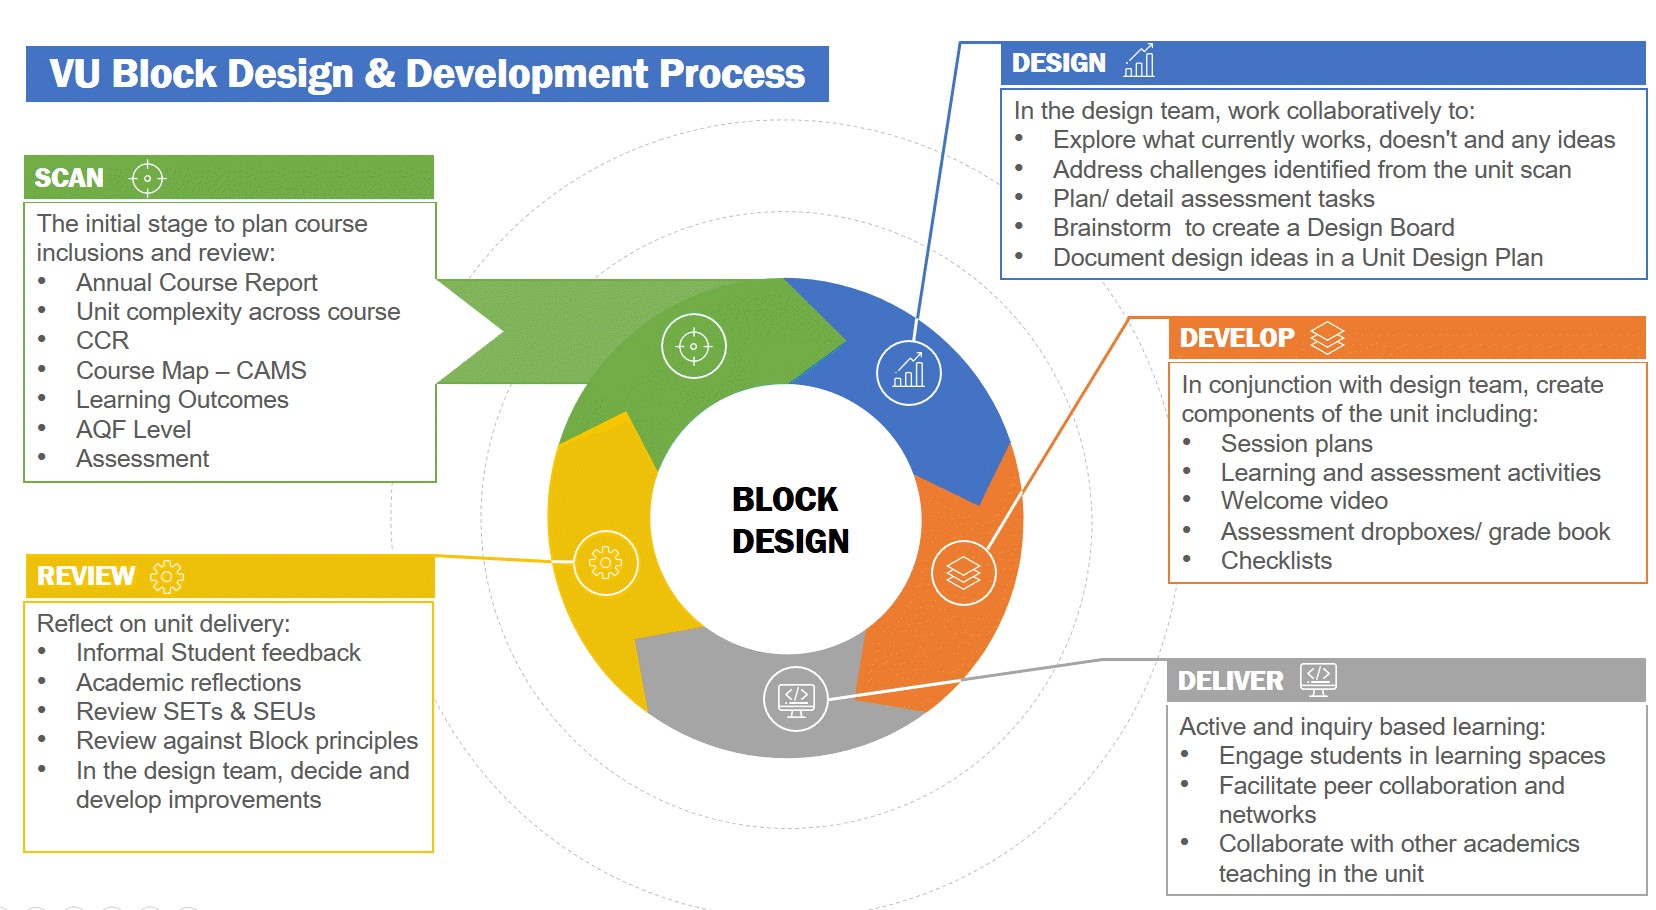 block design overview stages